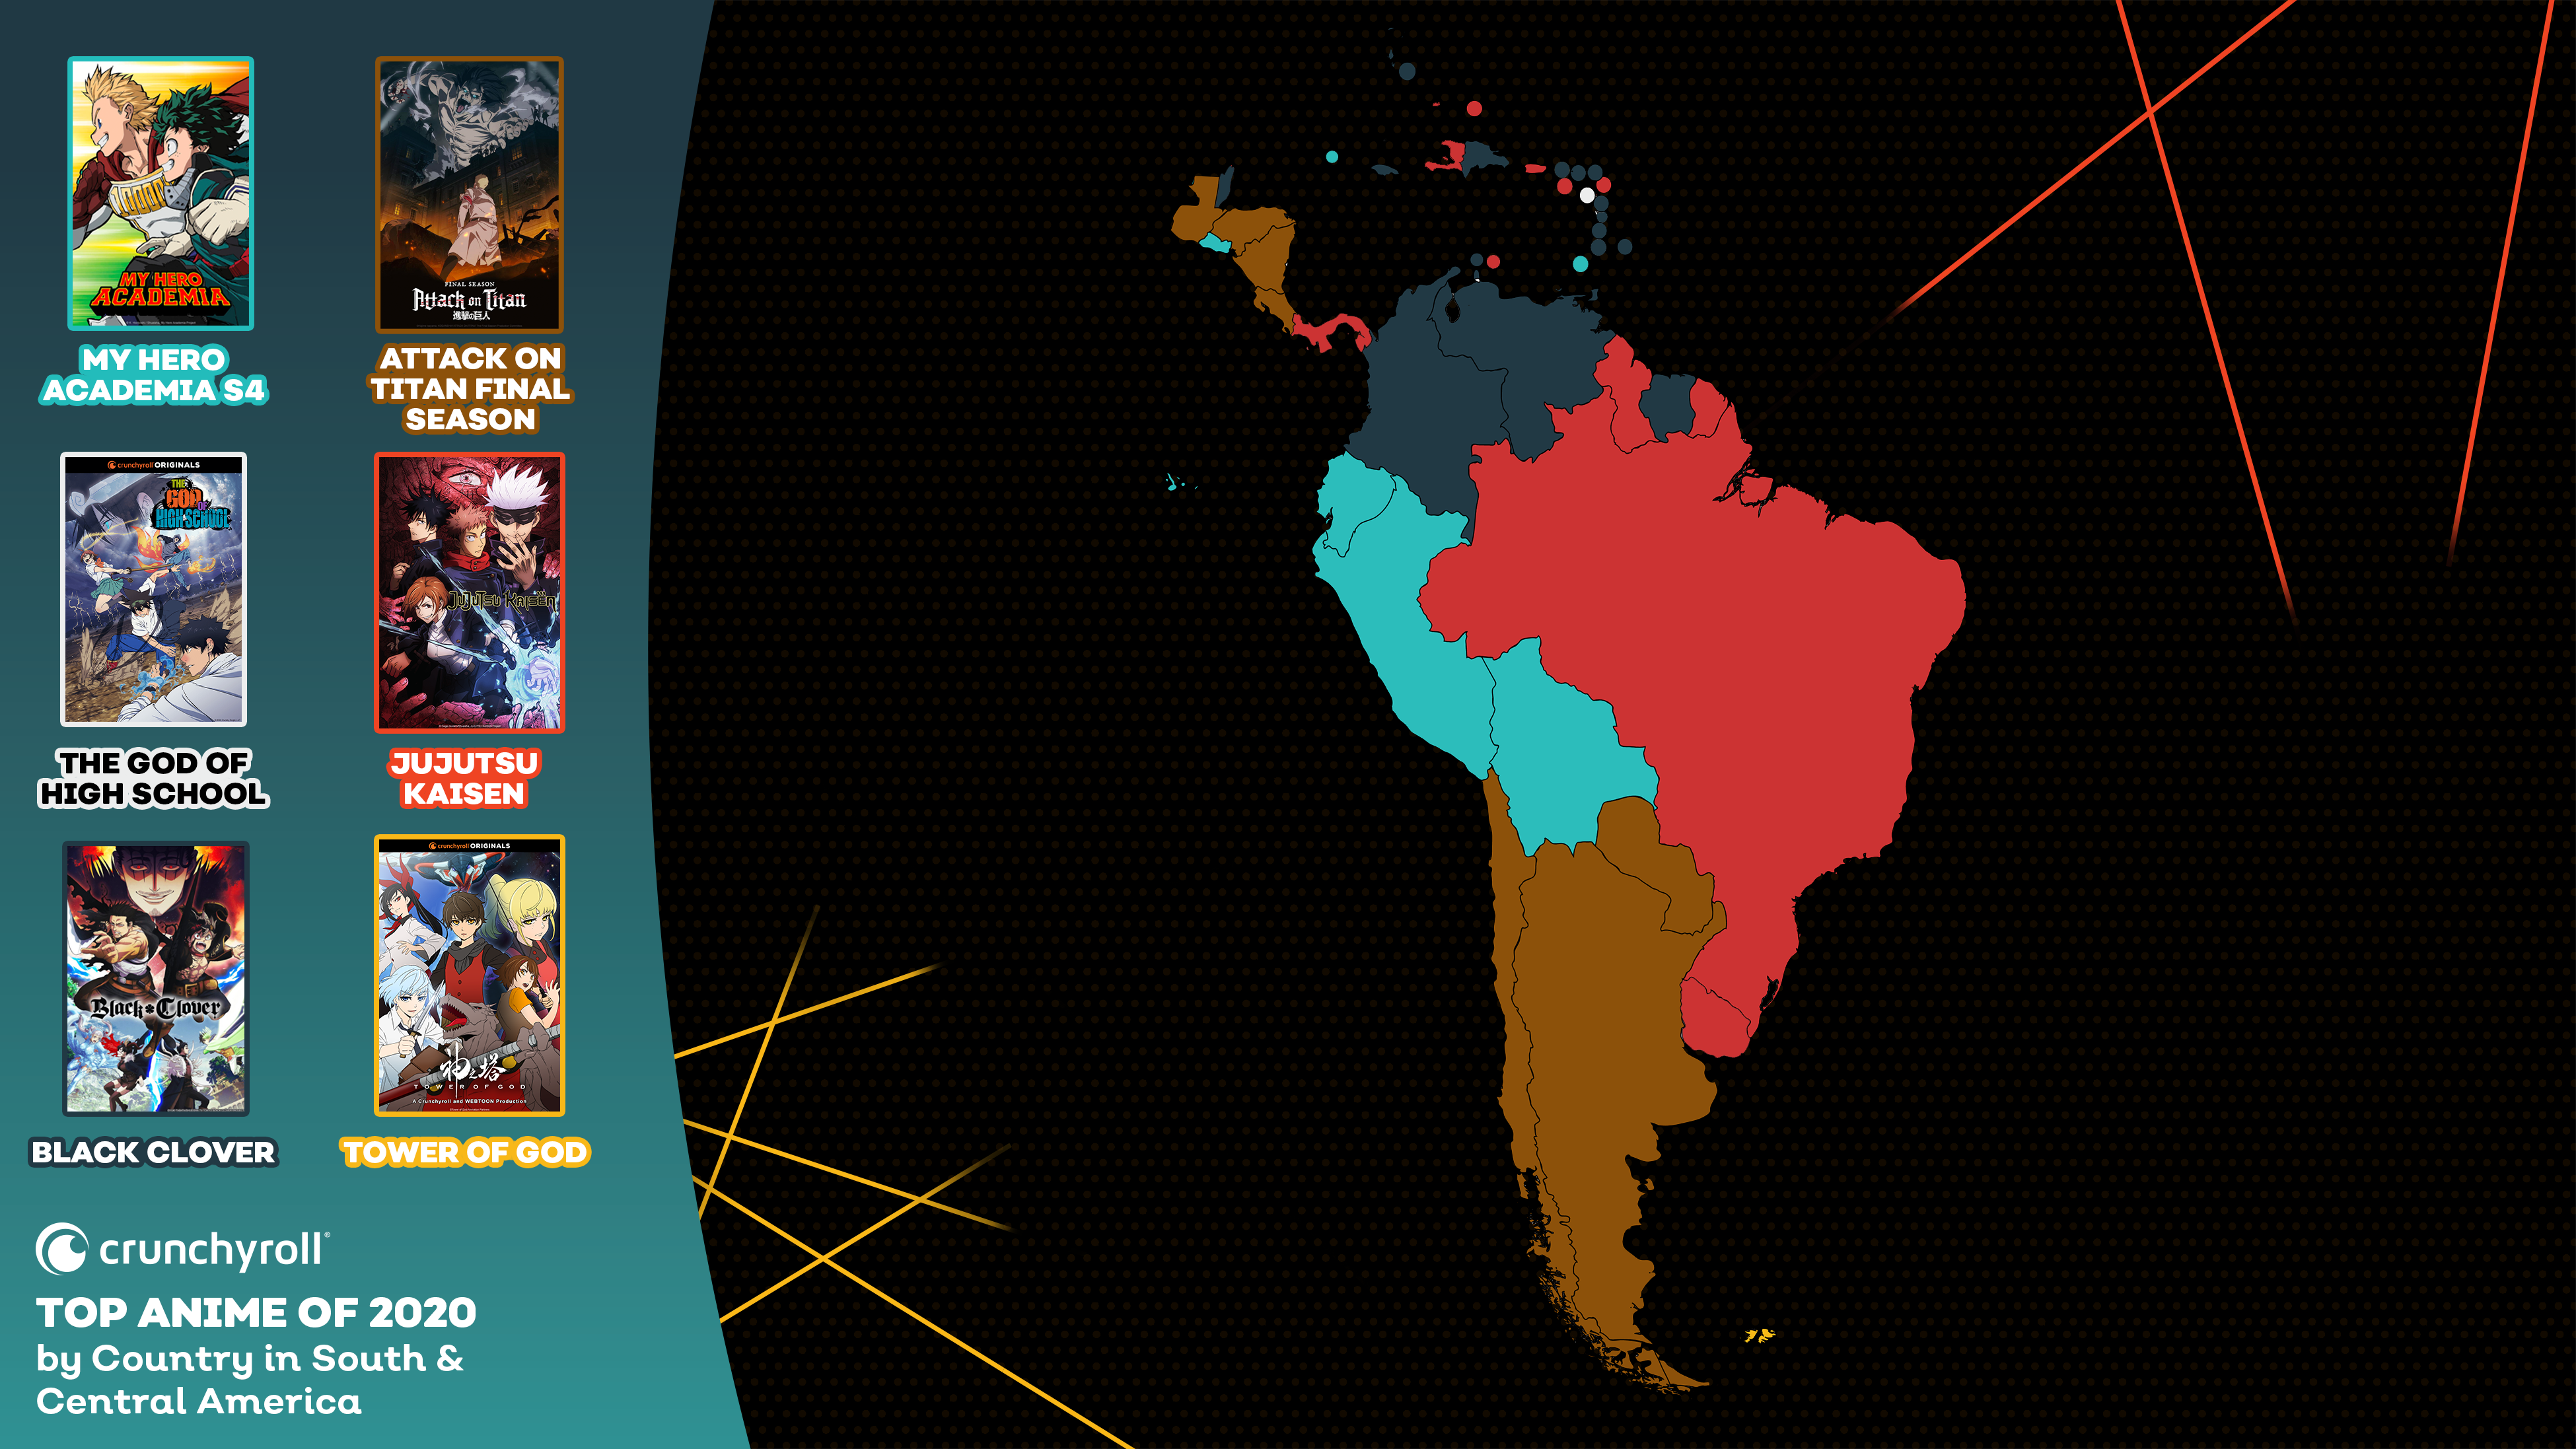 Top Anime of 2020 by Country -- South America